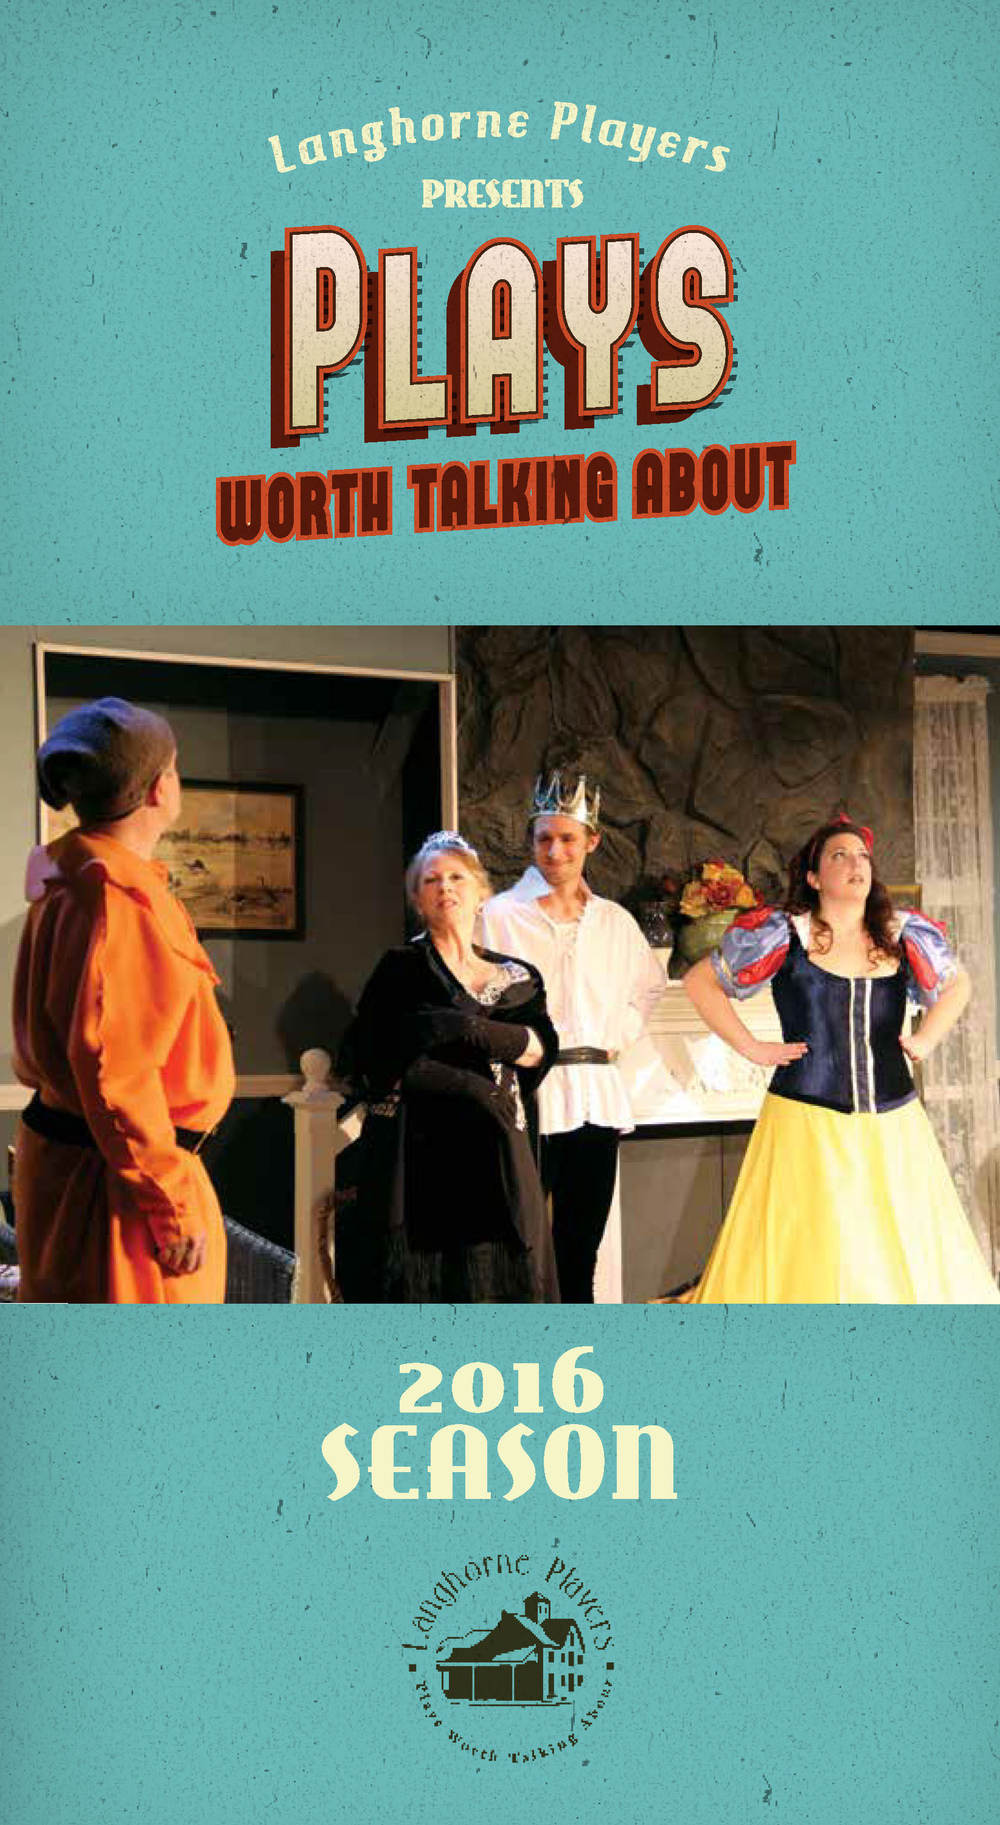 VIEW OUR 2016 SEASON BROCHURE